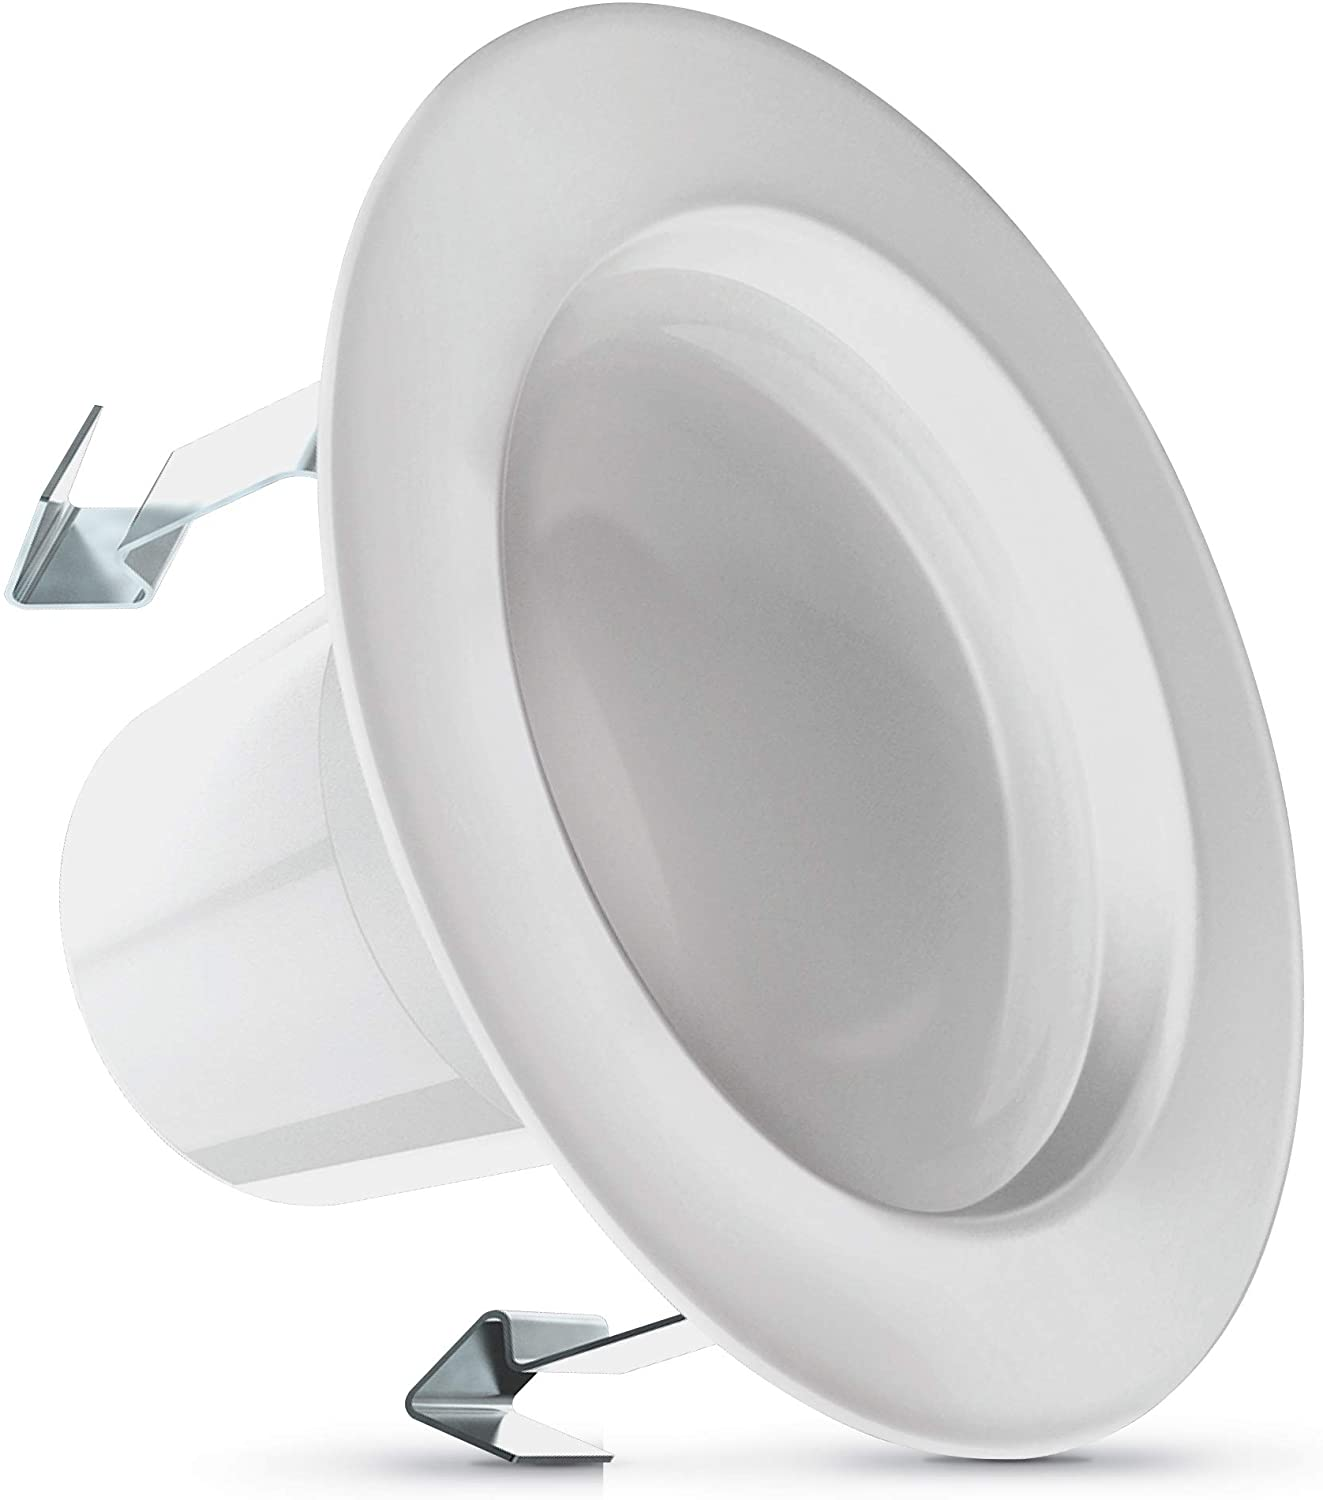 Feit LEDR4HO/6WYCA 75-Watt Equivalent Color Select (2700/3000/3500/4000/5000) Dimmable Recessed Downlight (1-Pack)